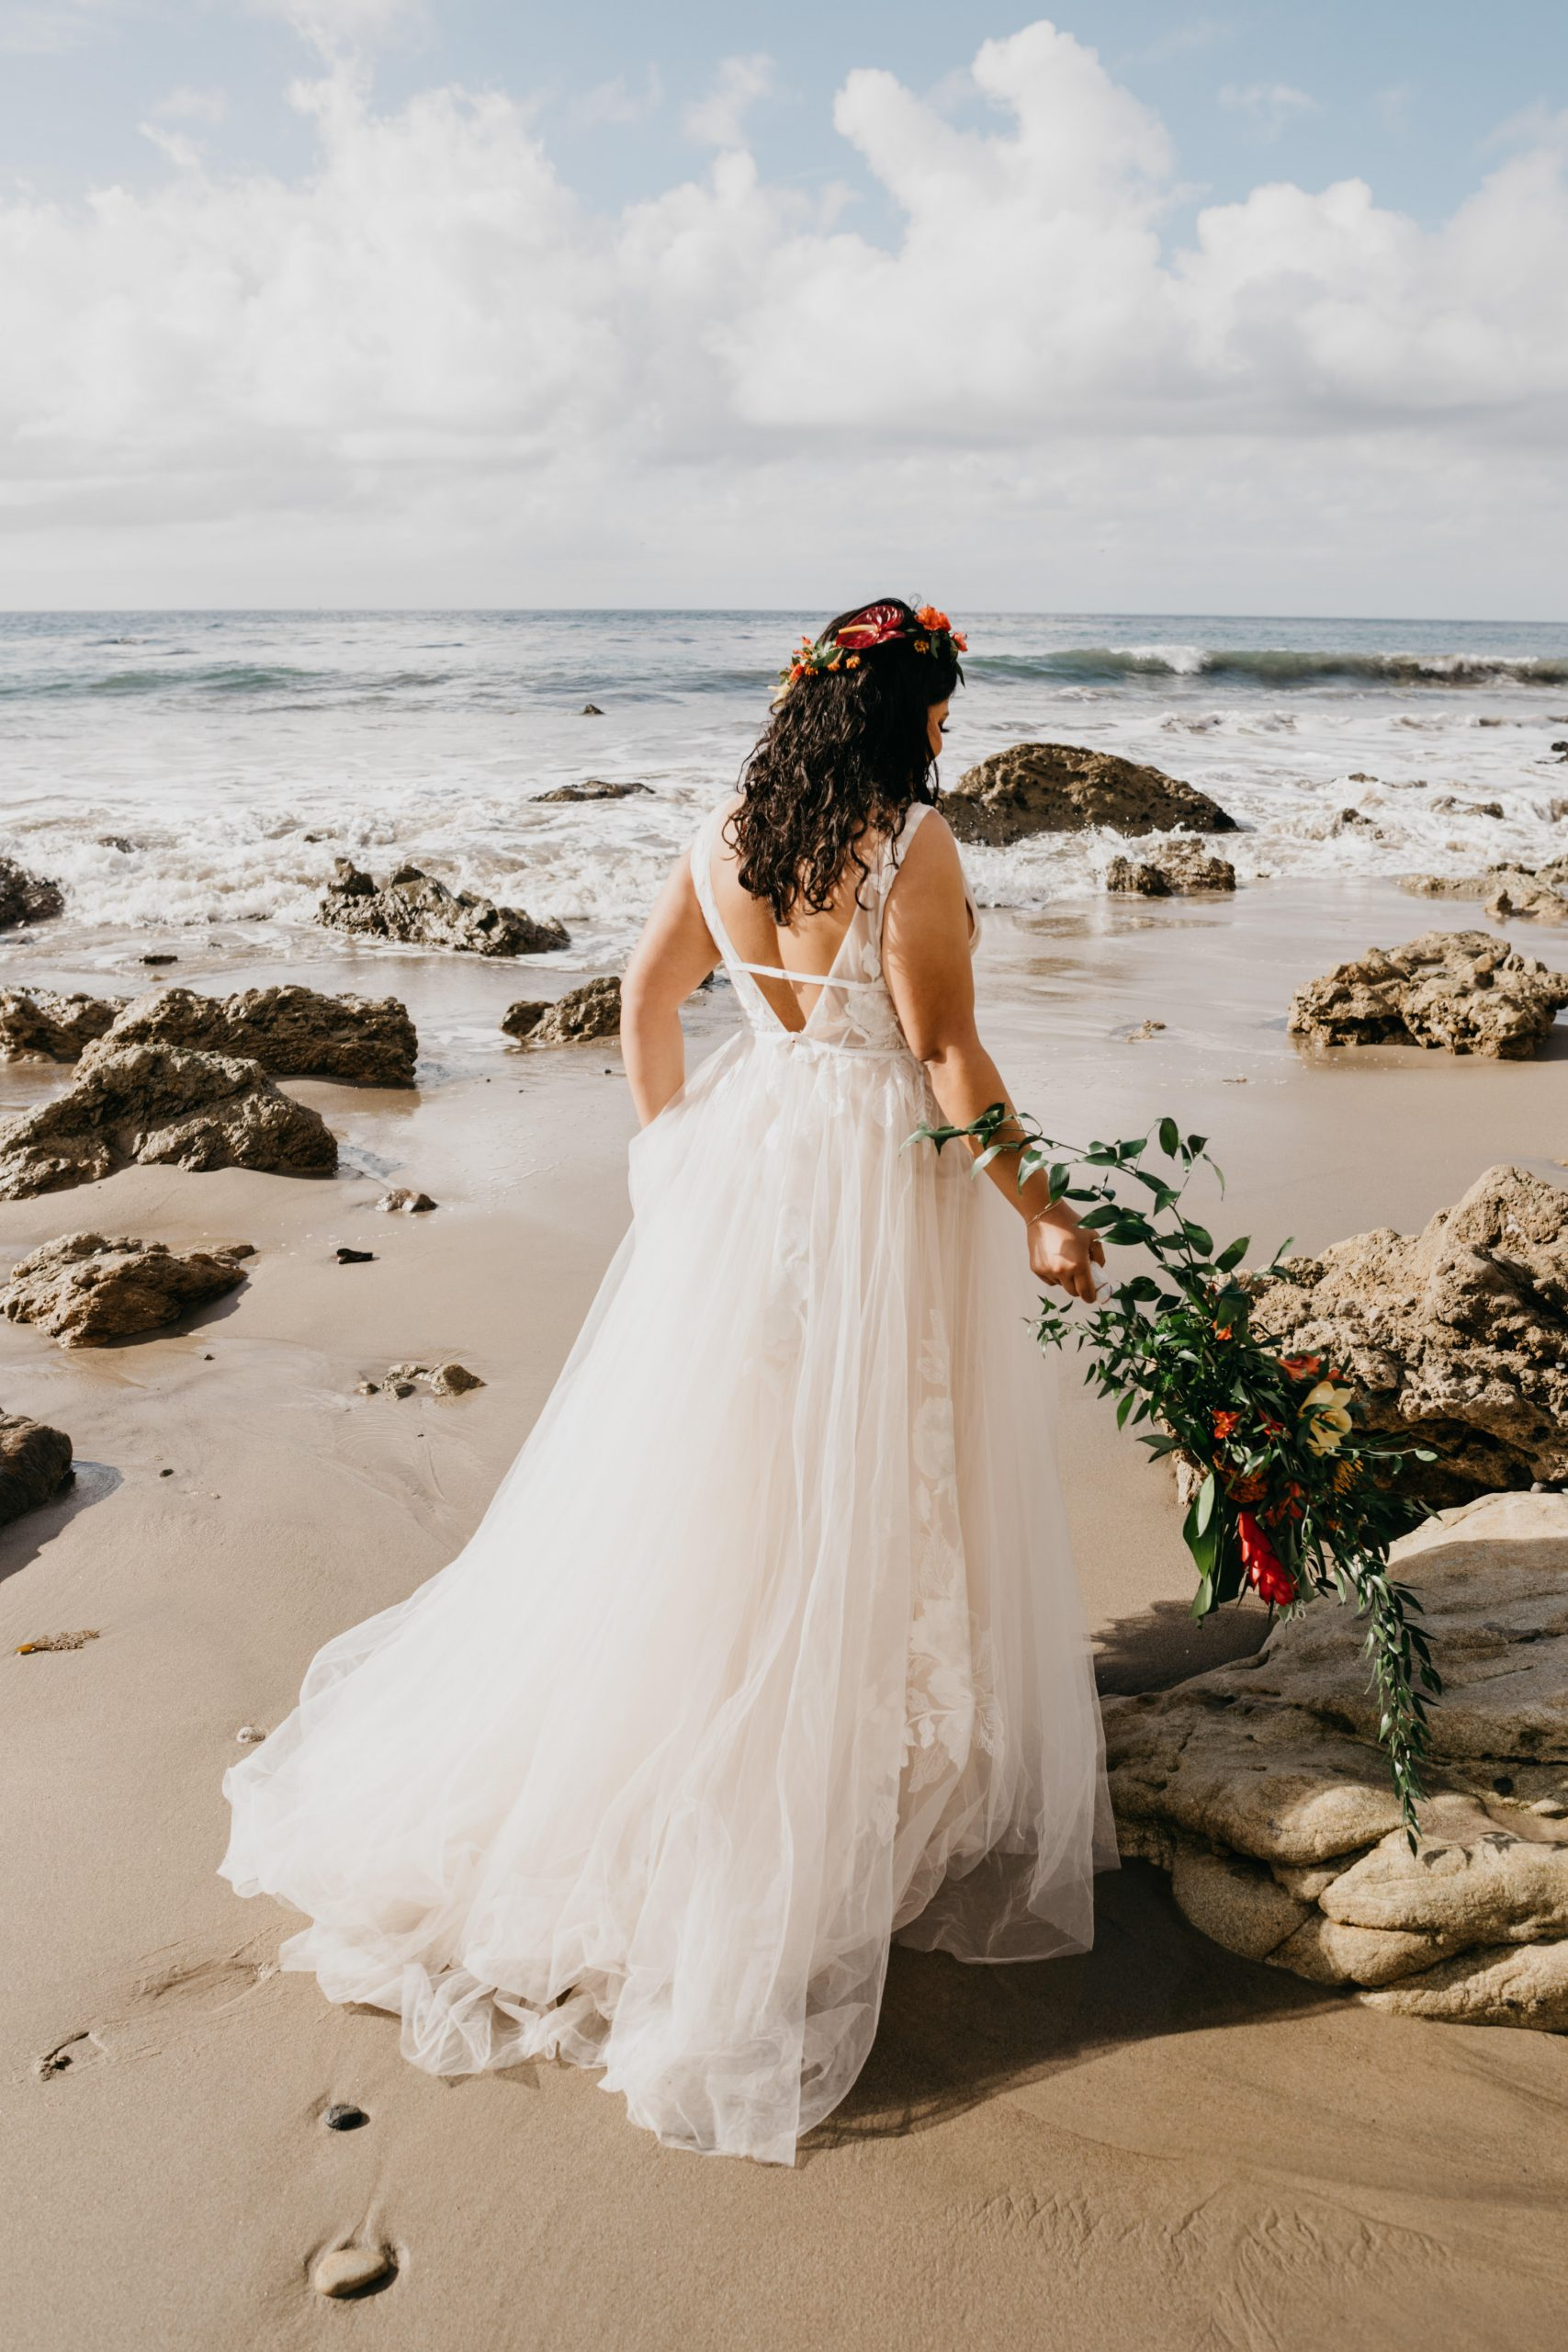 Bride portrait at the beach, image by Fatima Elreda Photo